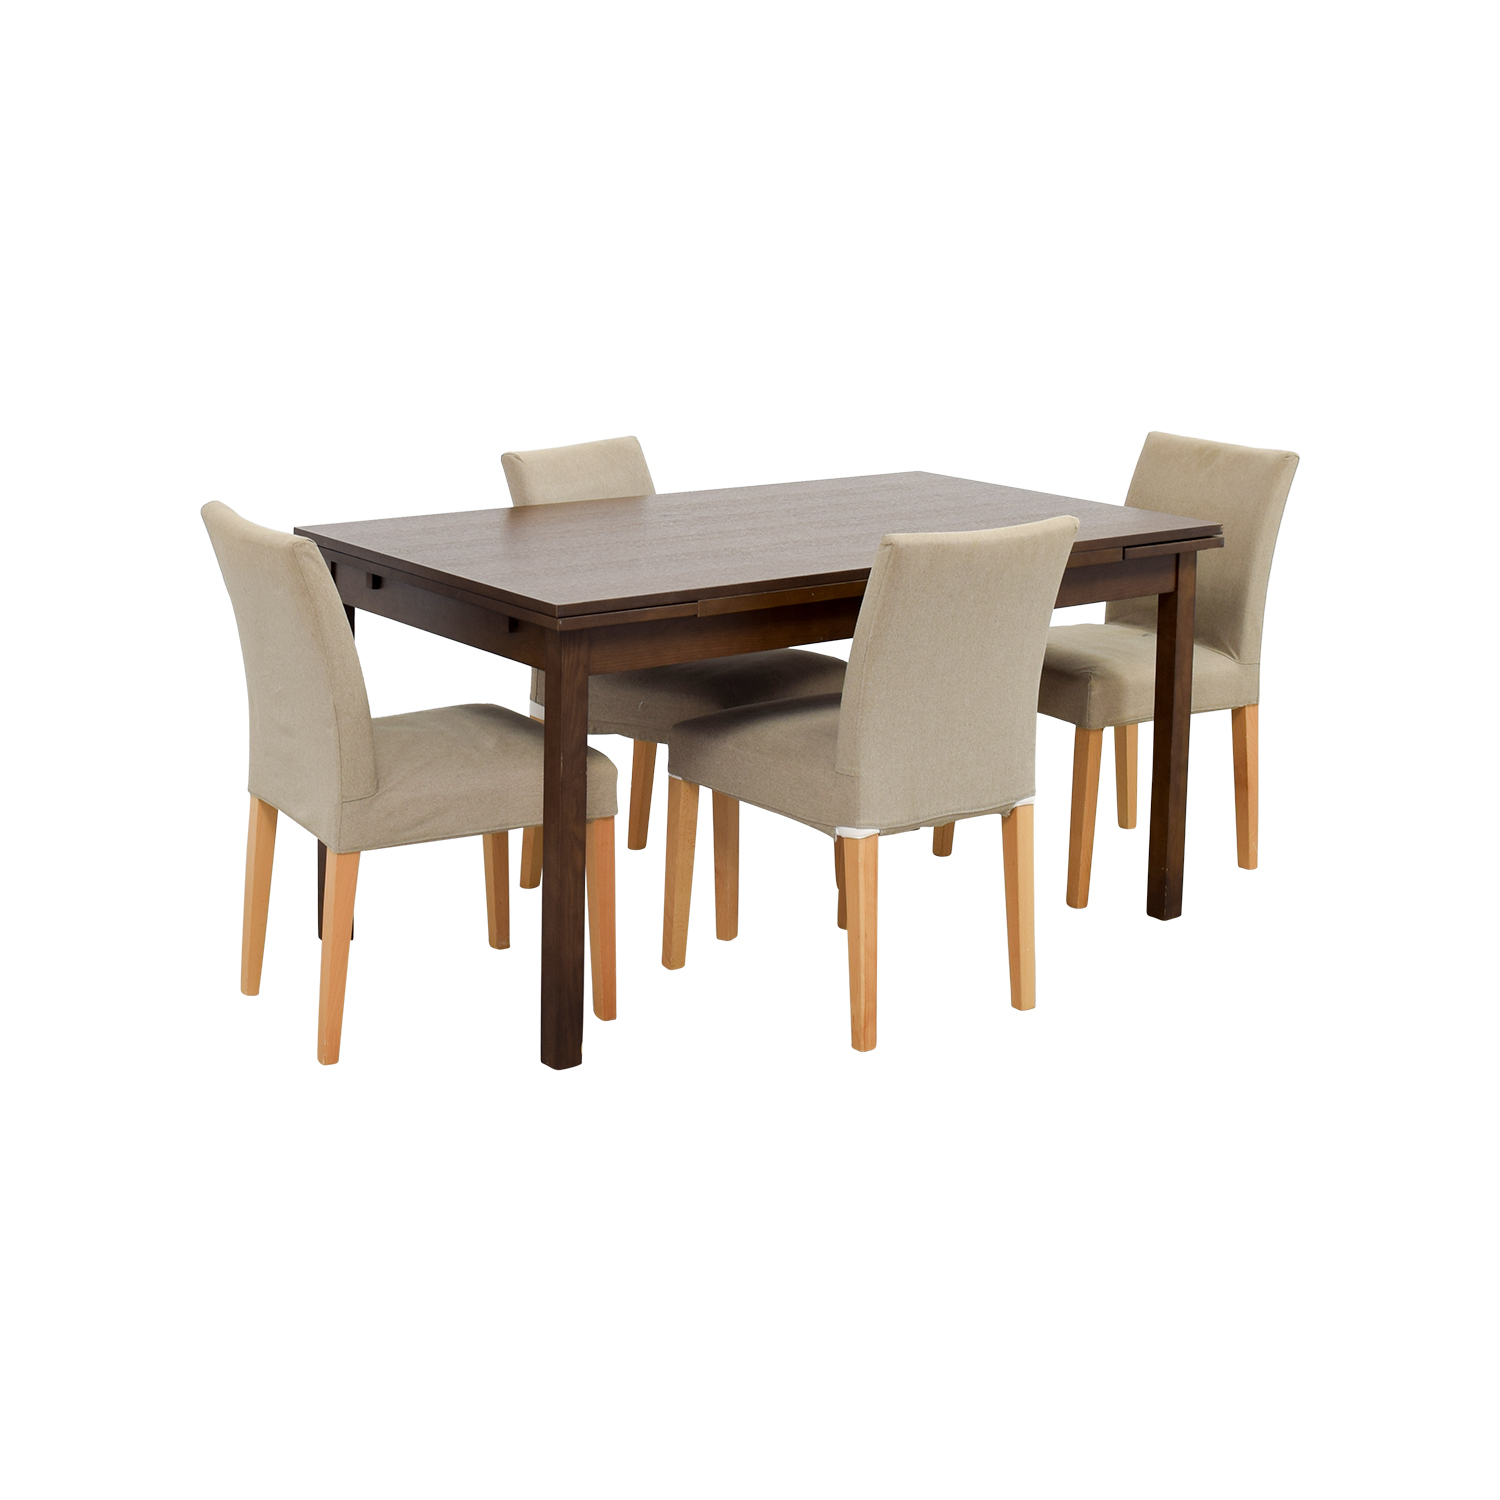 73 off muji muji extendable dining table with chairs tables. Black Bedroom Furniture Sets. Home Design Ideas